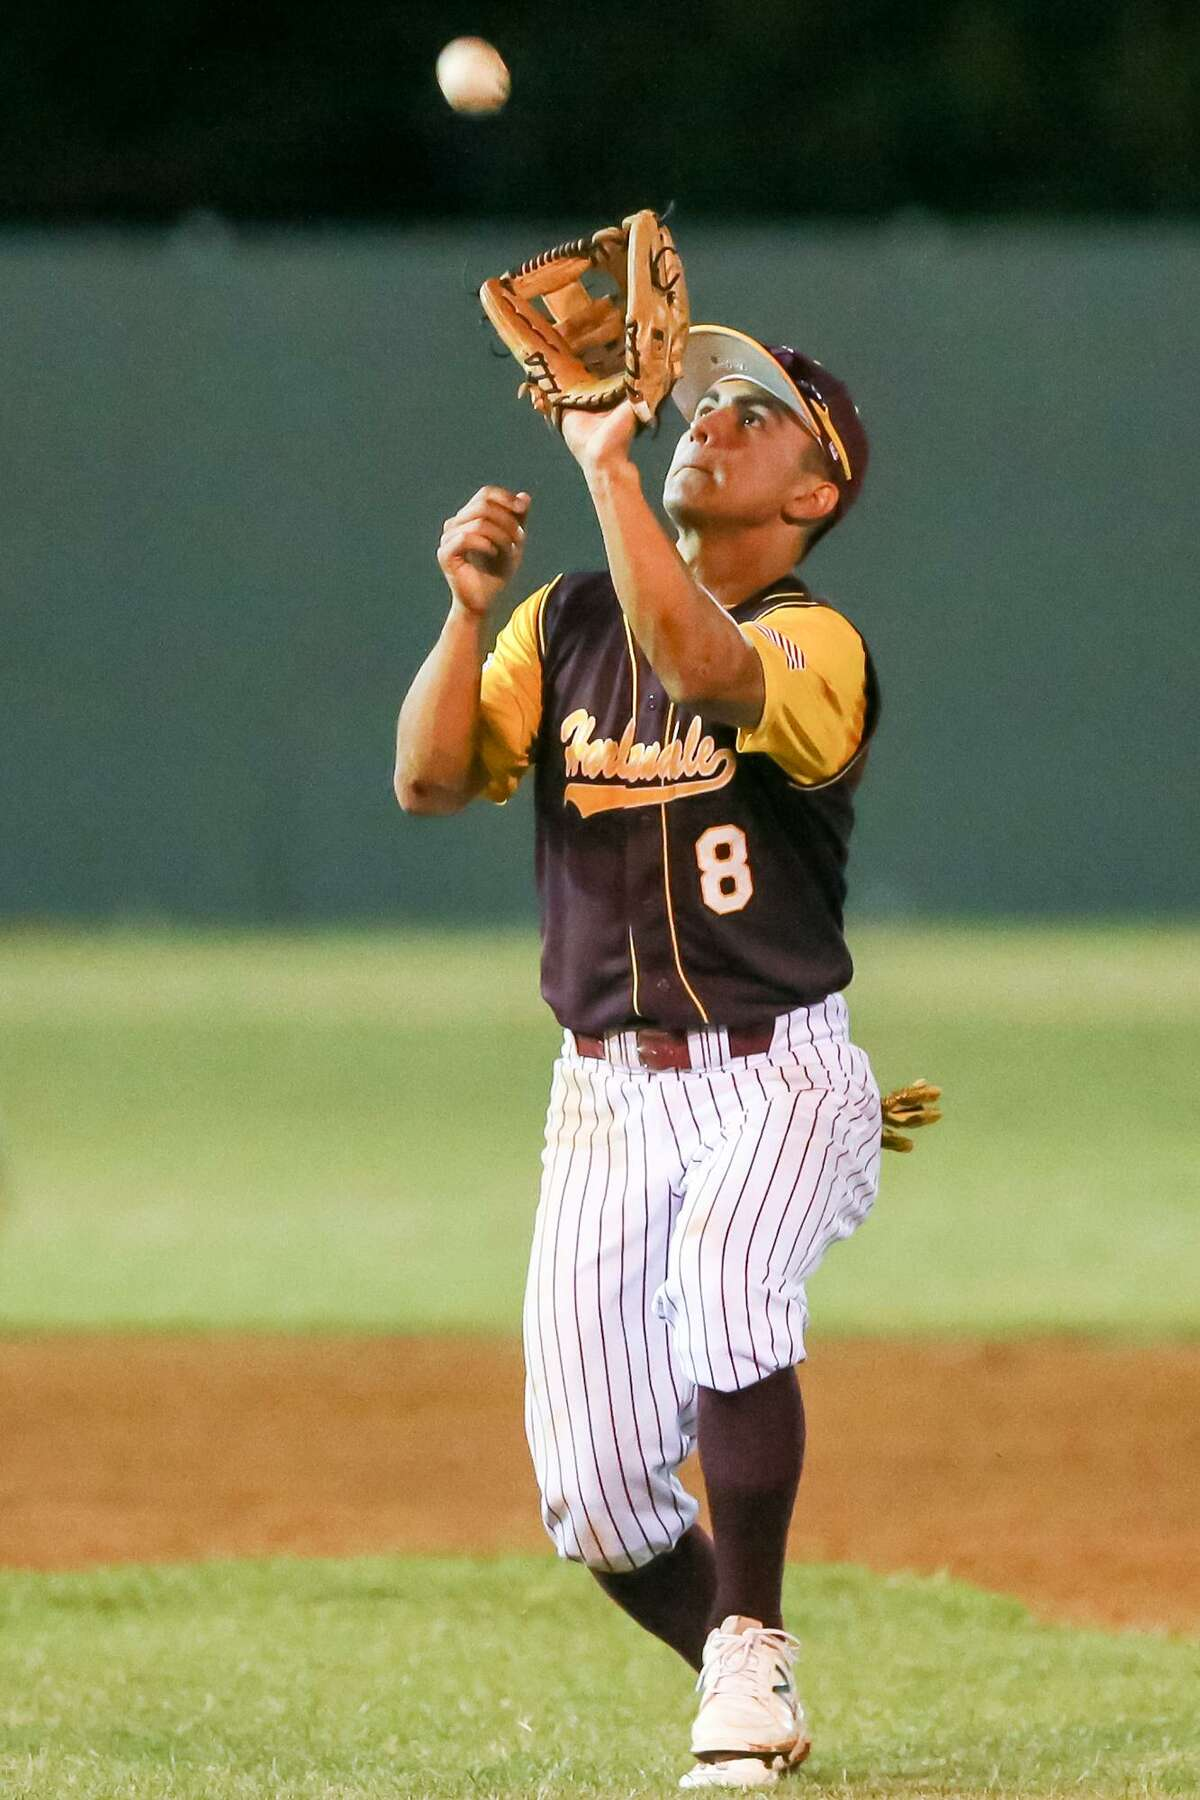 Harlandale's Shawn Tober catches a pop up in District 28-5A action against McCollum in April.